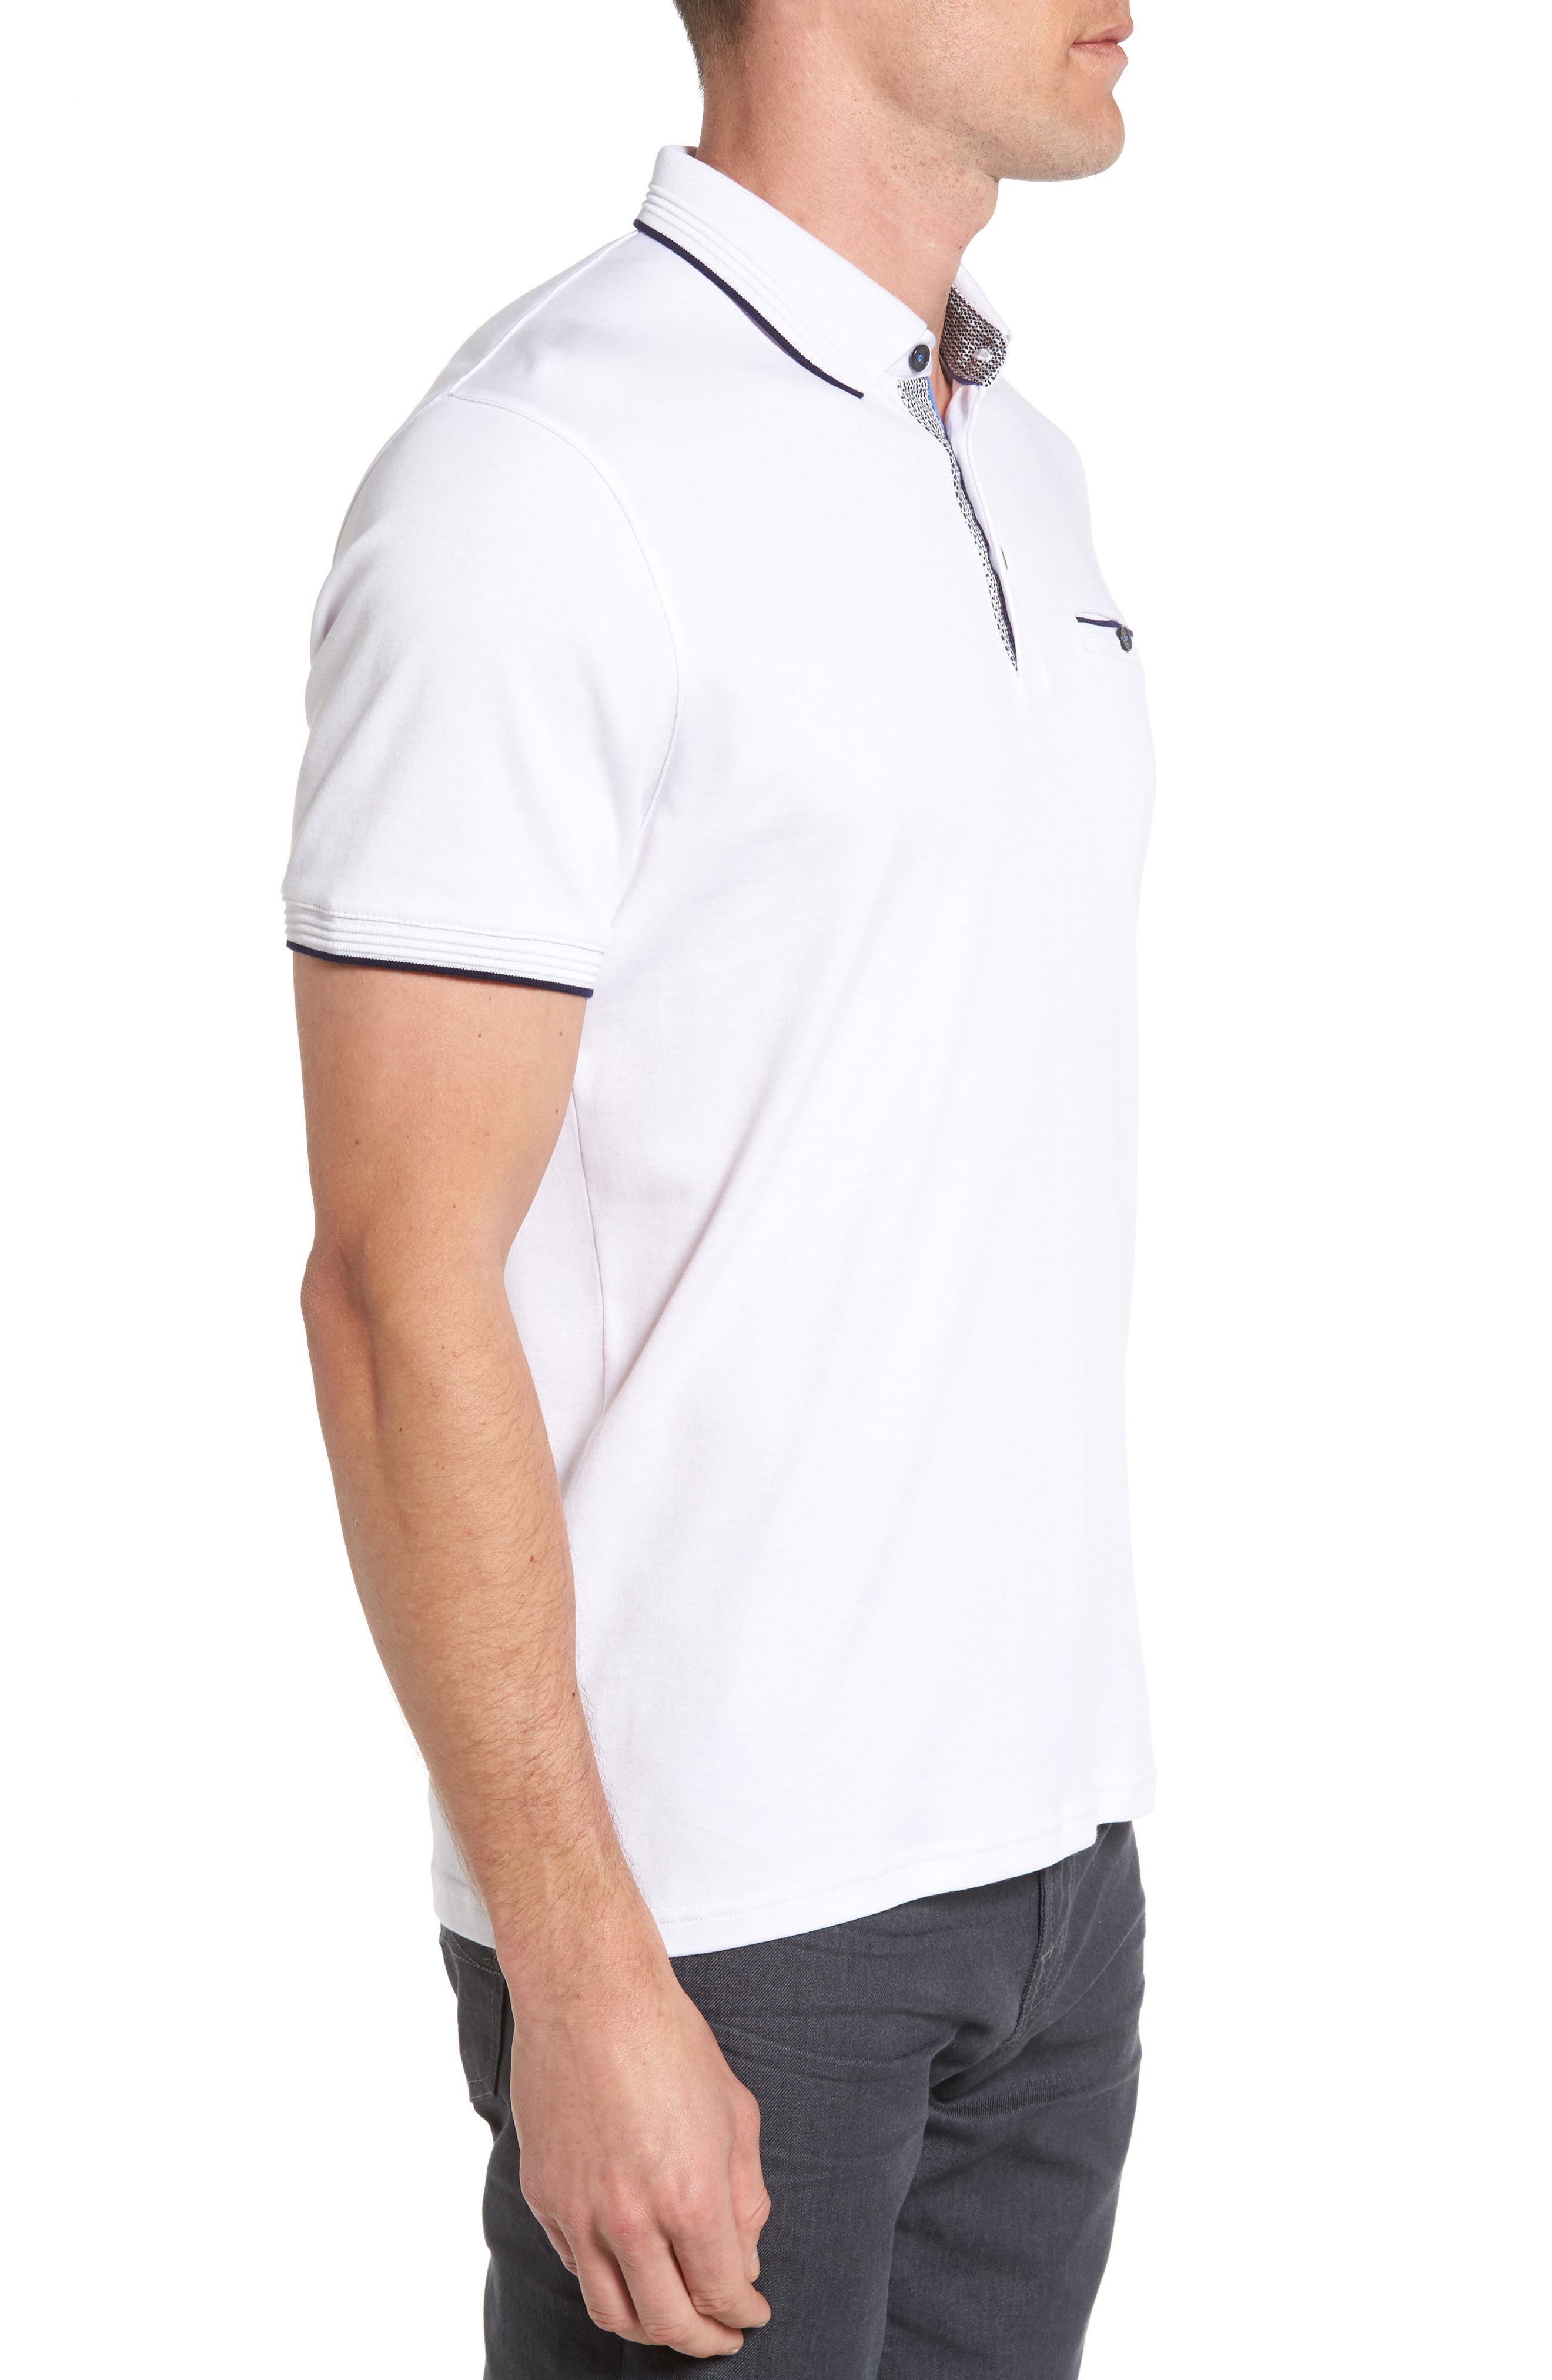 TED BAKER LONDON, Derry Modern Slim Fit Polo, Alternate thumbnail 3, color, WHITE